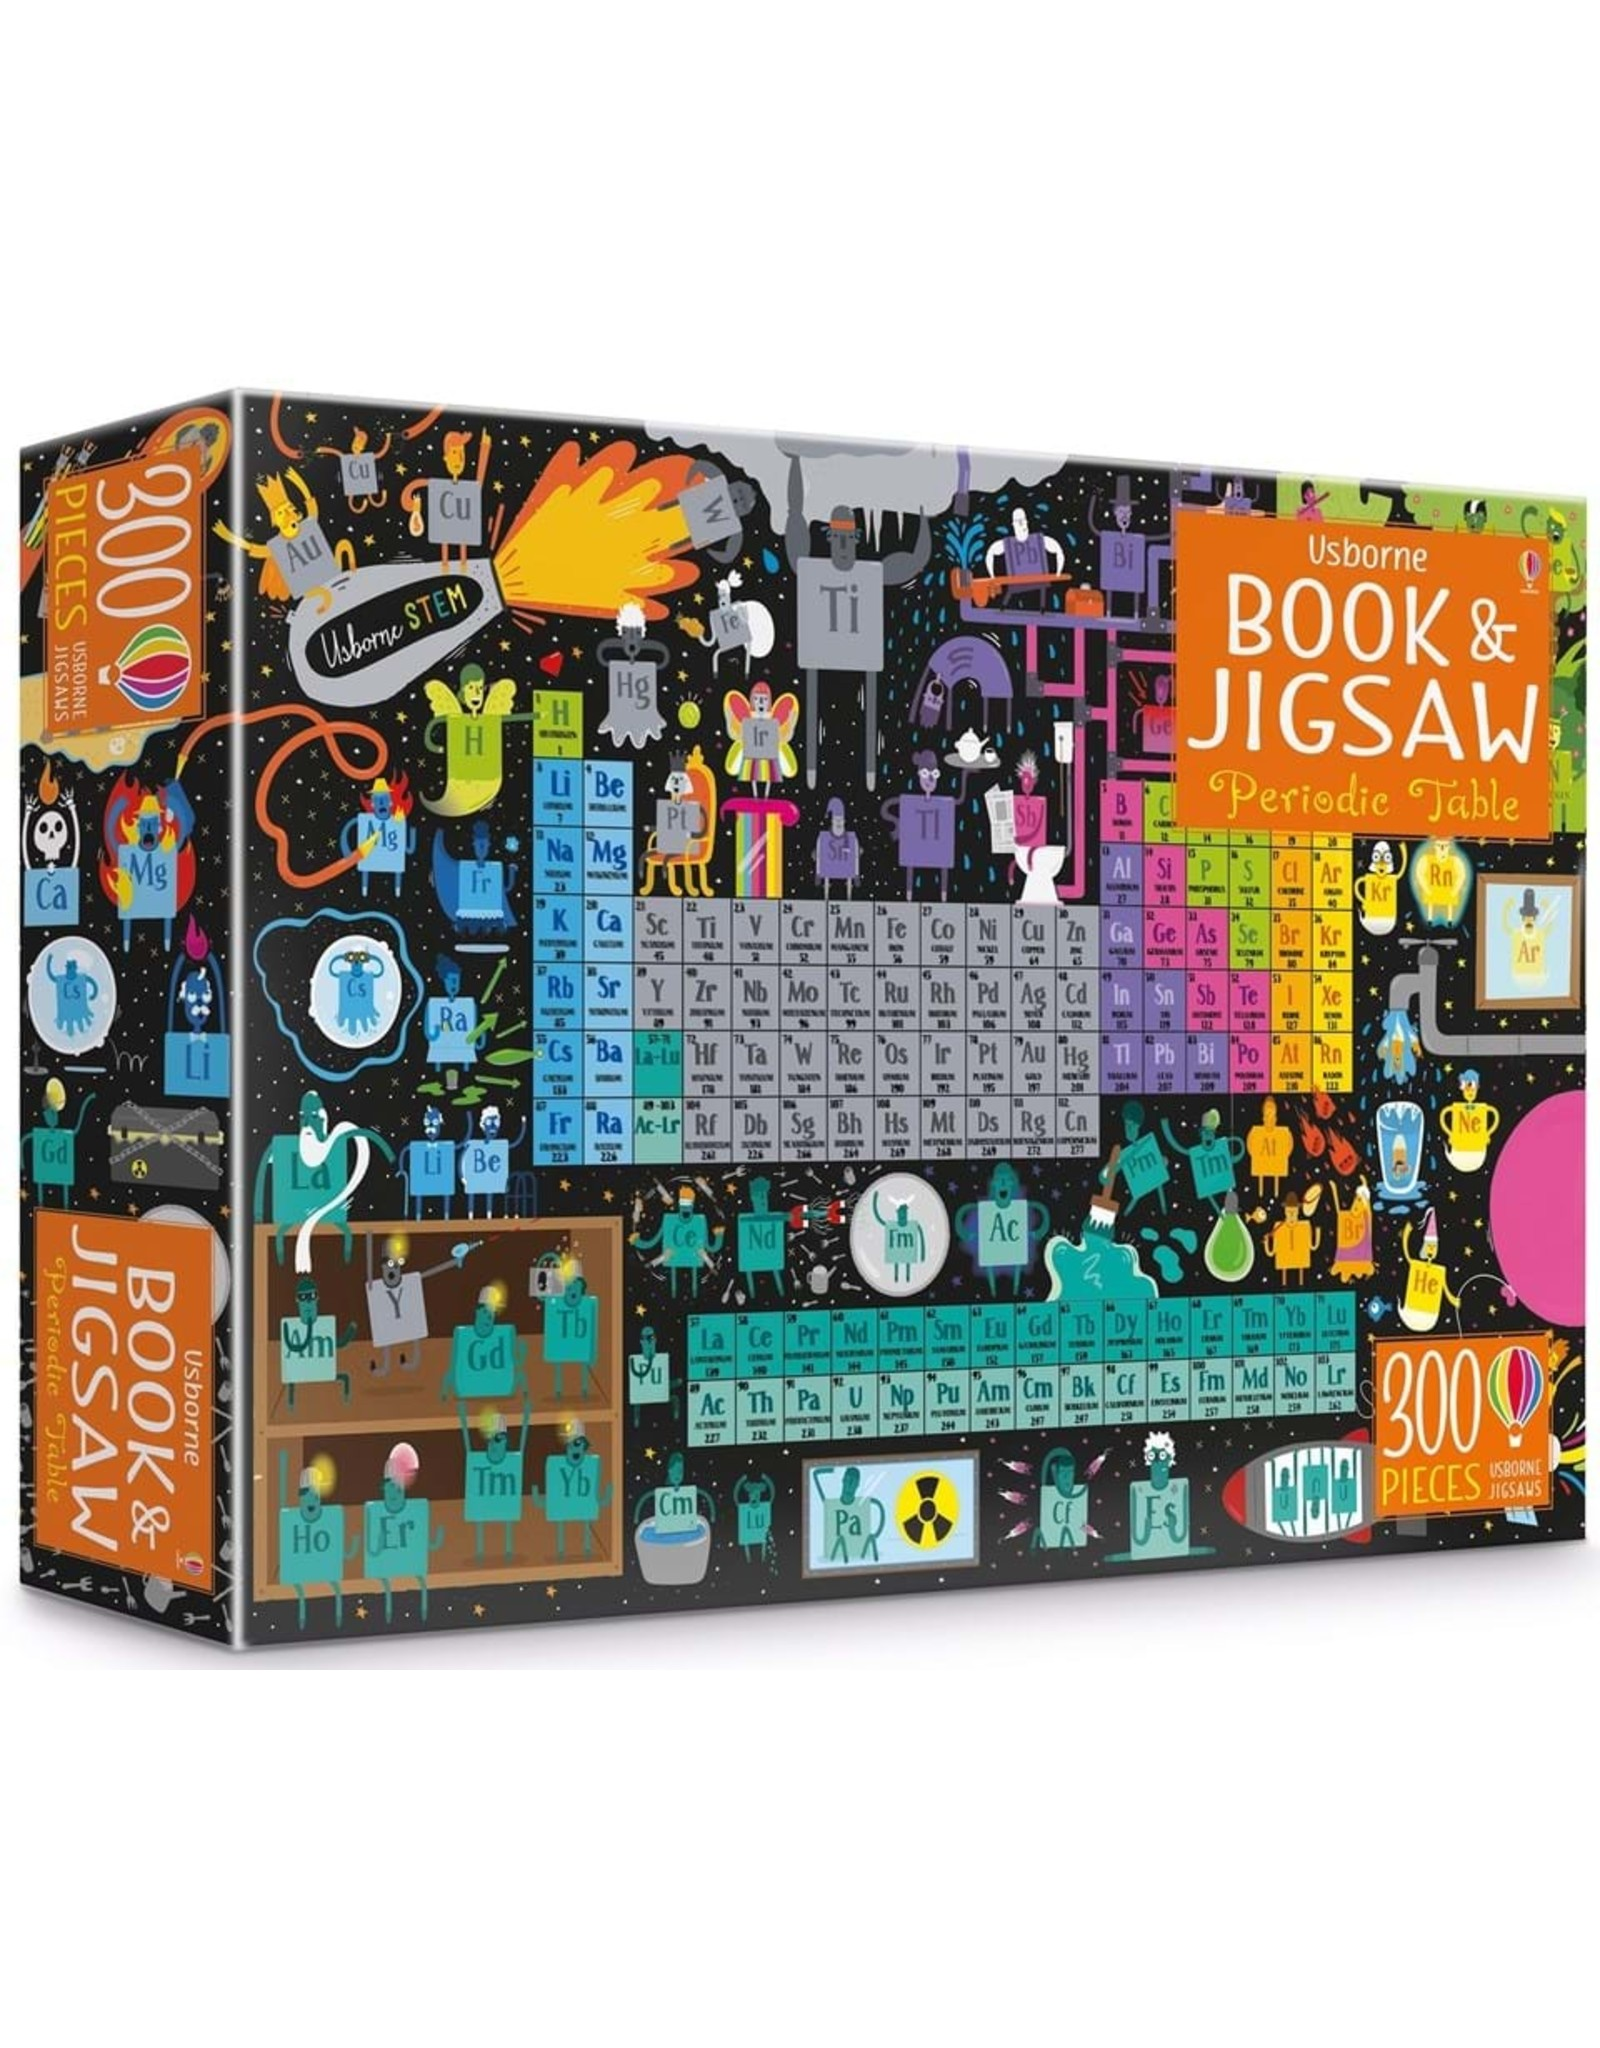 Usborne Periodic Table Book & Jigsaw Puzzle (300 pieces)